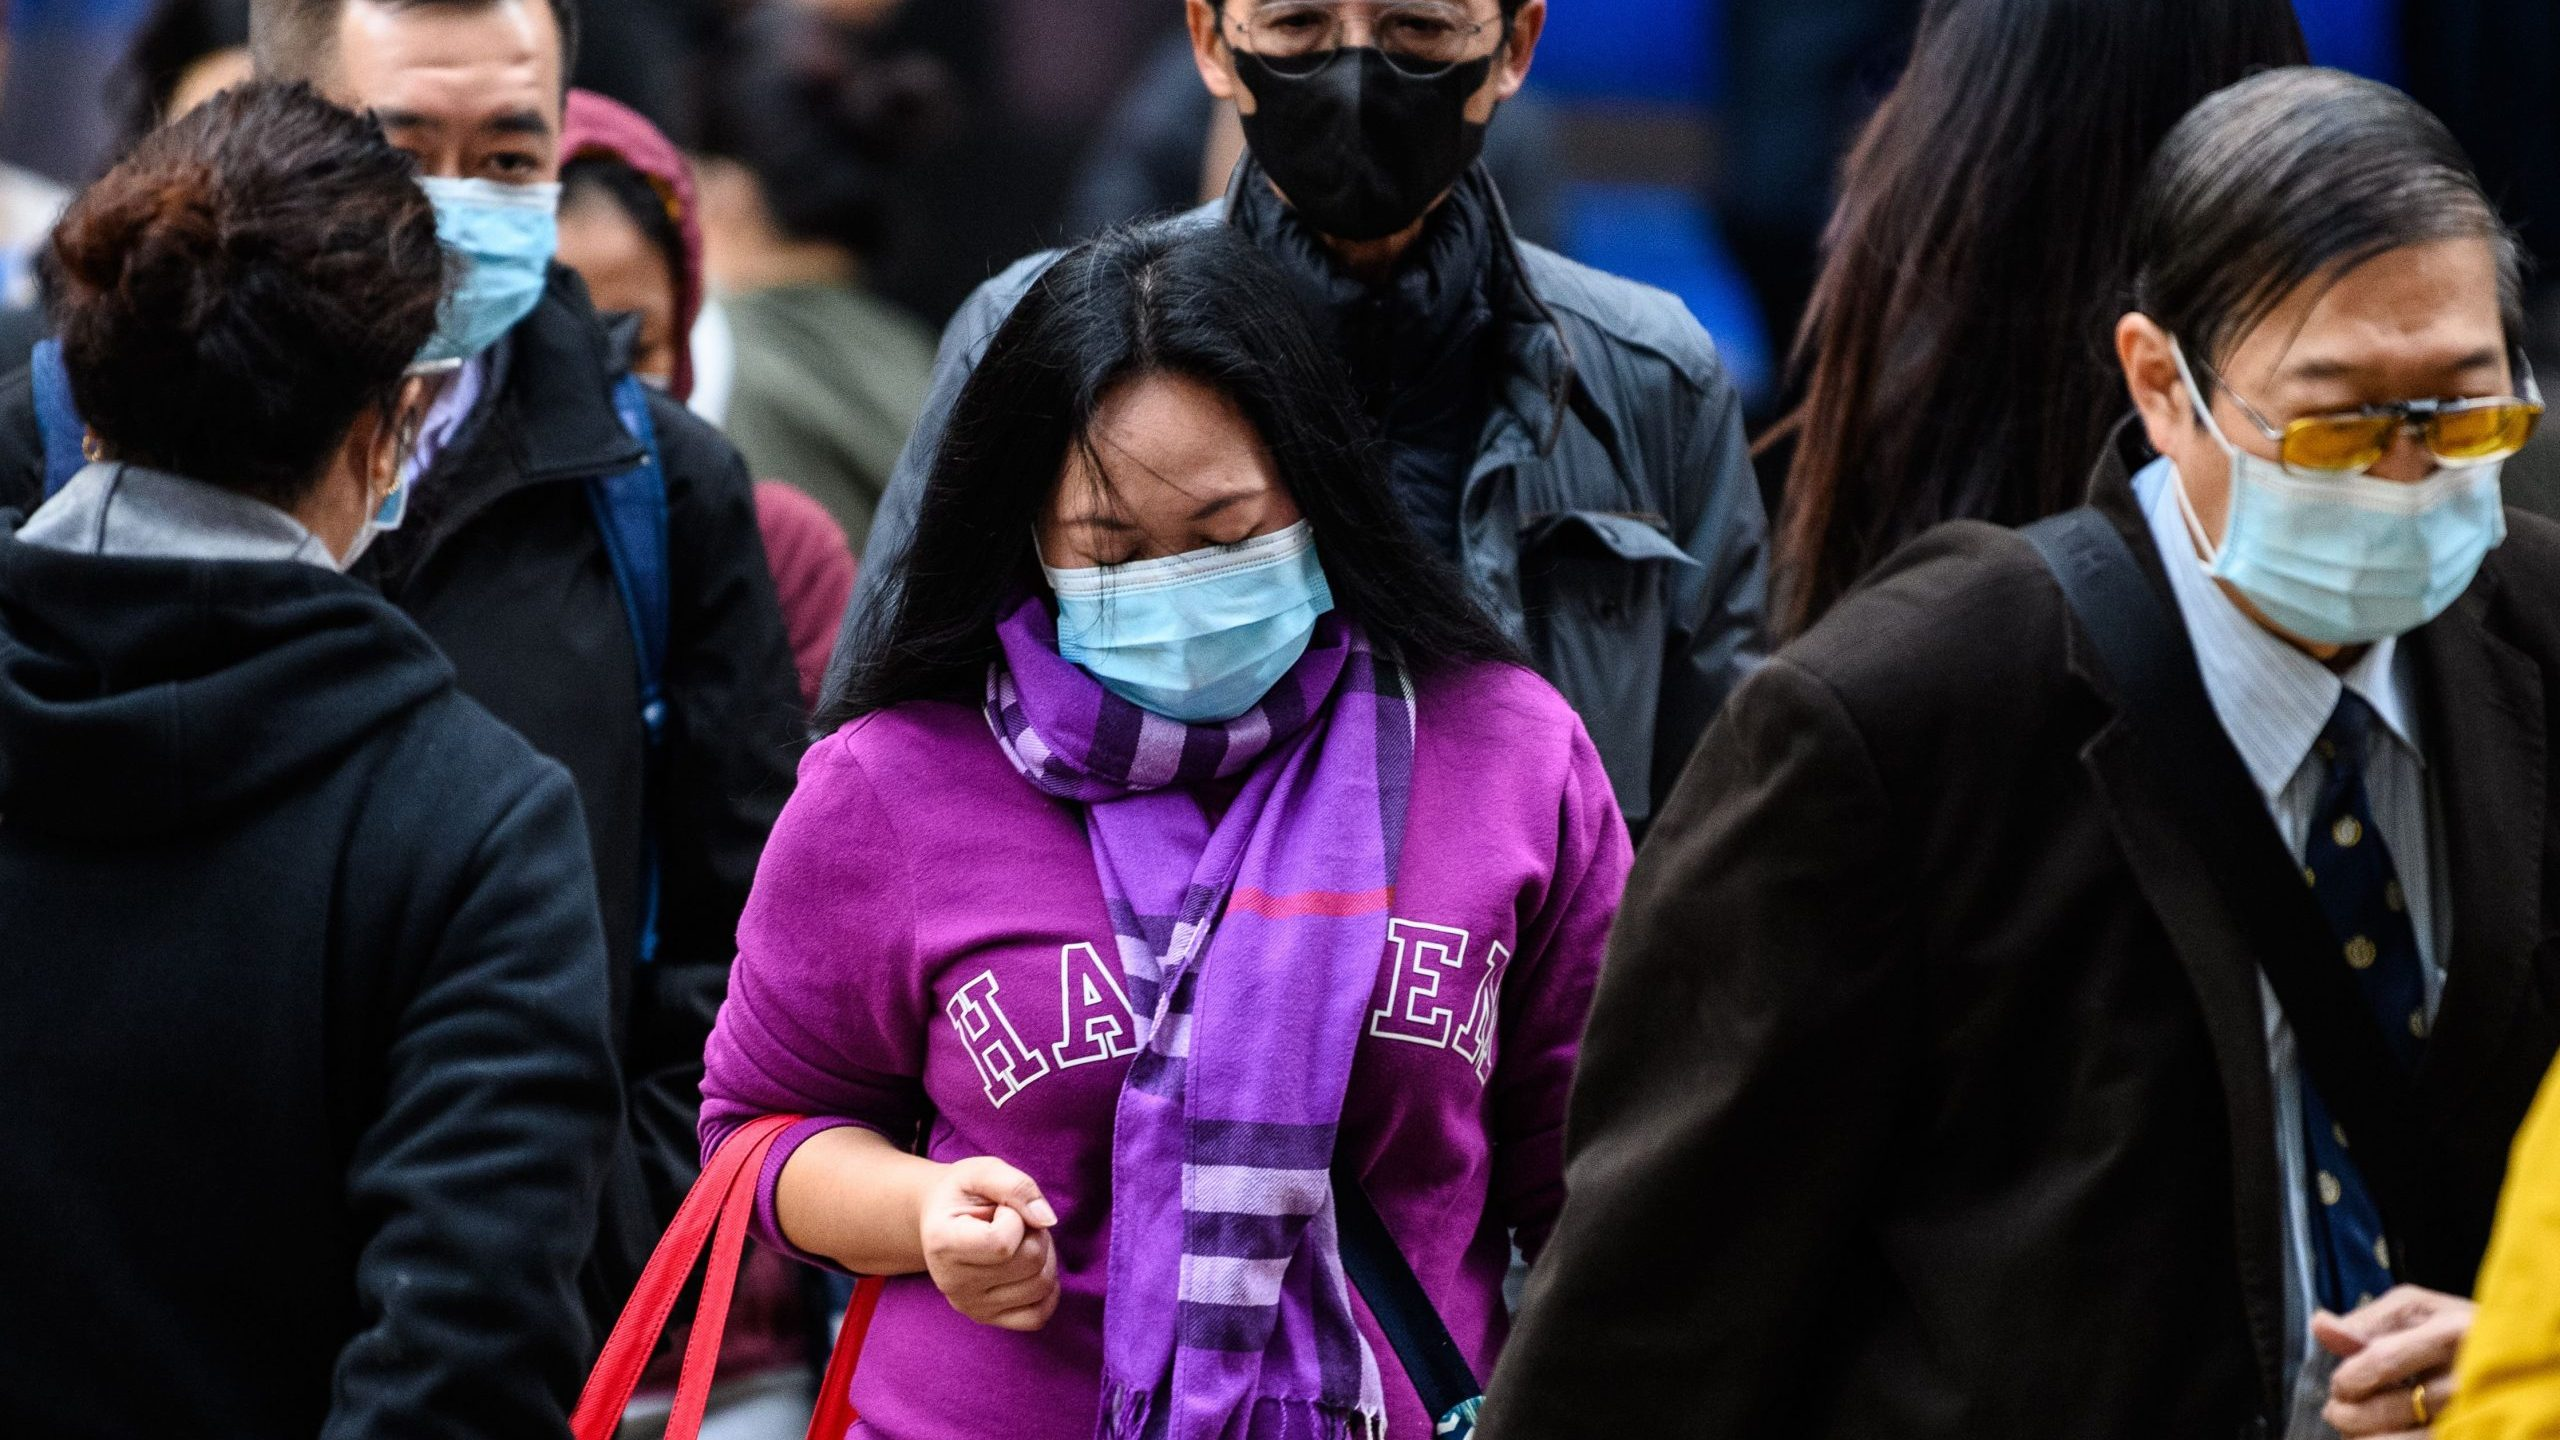 Pedestrians wearing face masks as a preventative measure following a virus outbreak which began in the Chinese city of Wuhan, cross a road in Hong Kong on Jan. 31, 2020. (Credit: ANTHONY WALLACE/AFP via Getty Images)